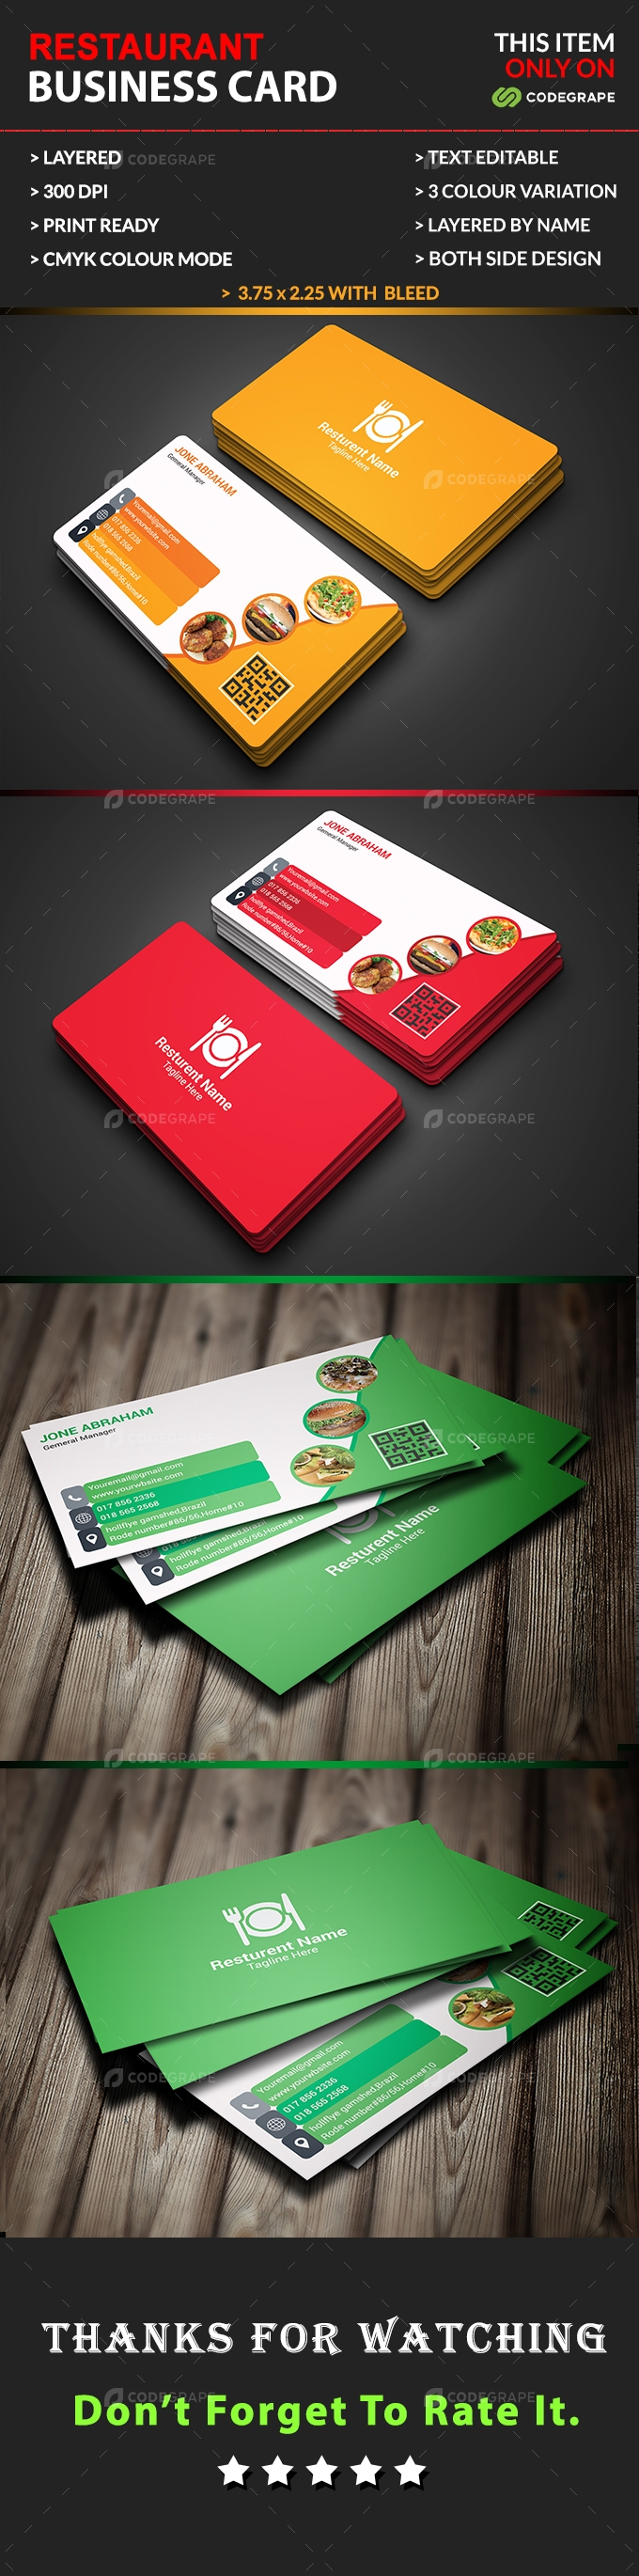 Restaurant Business Card.